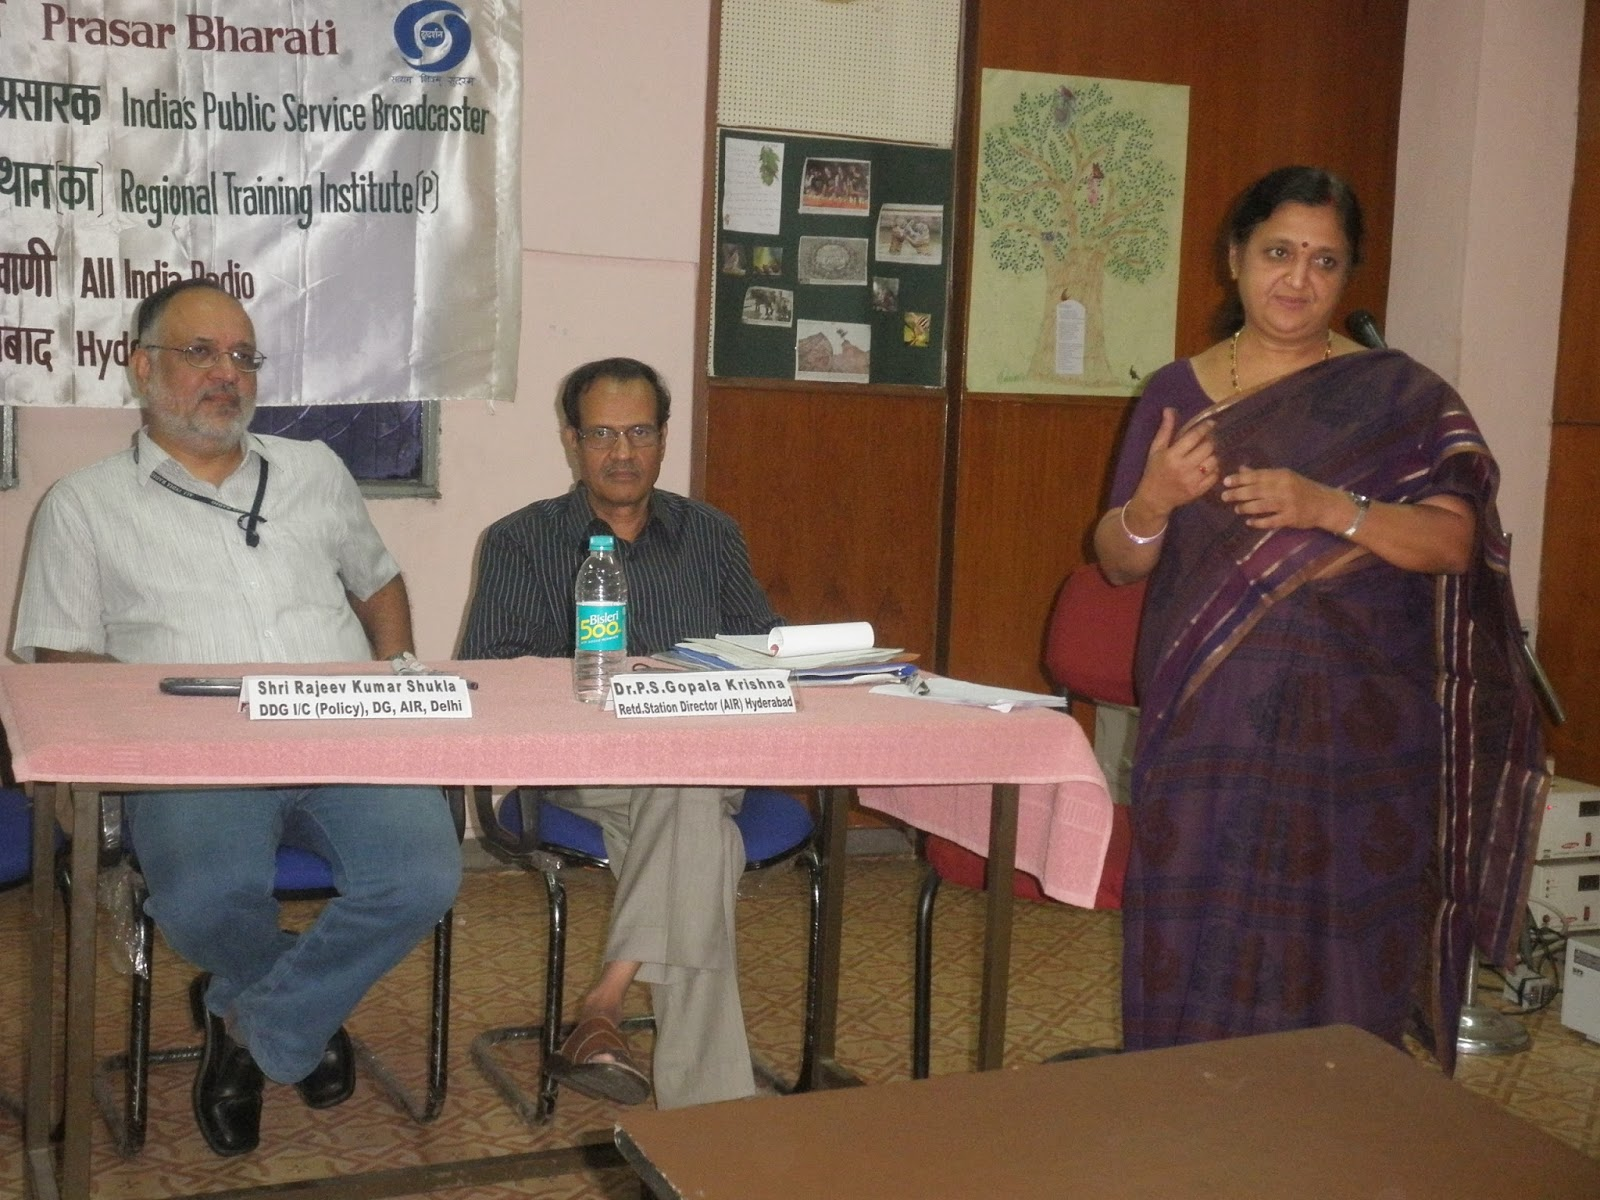 Election Broadcast training held at RTI(P), Hyderabad